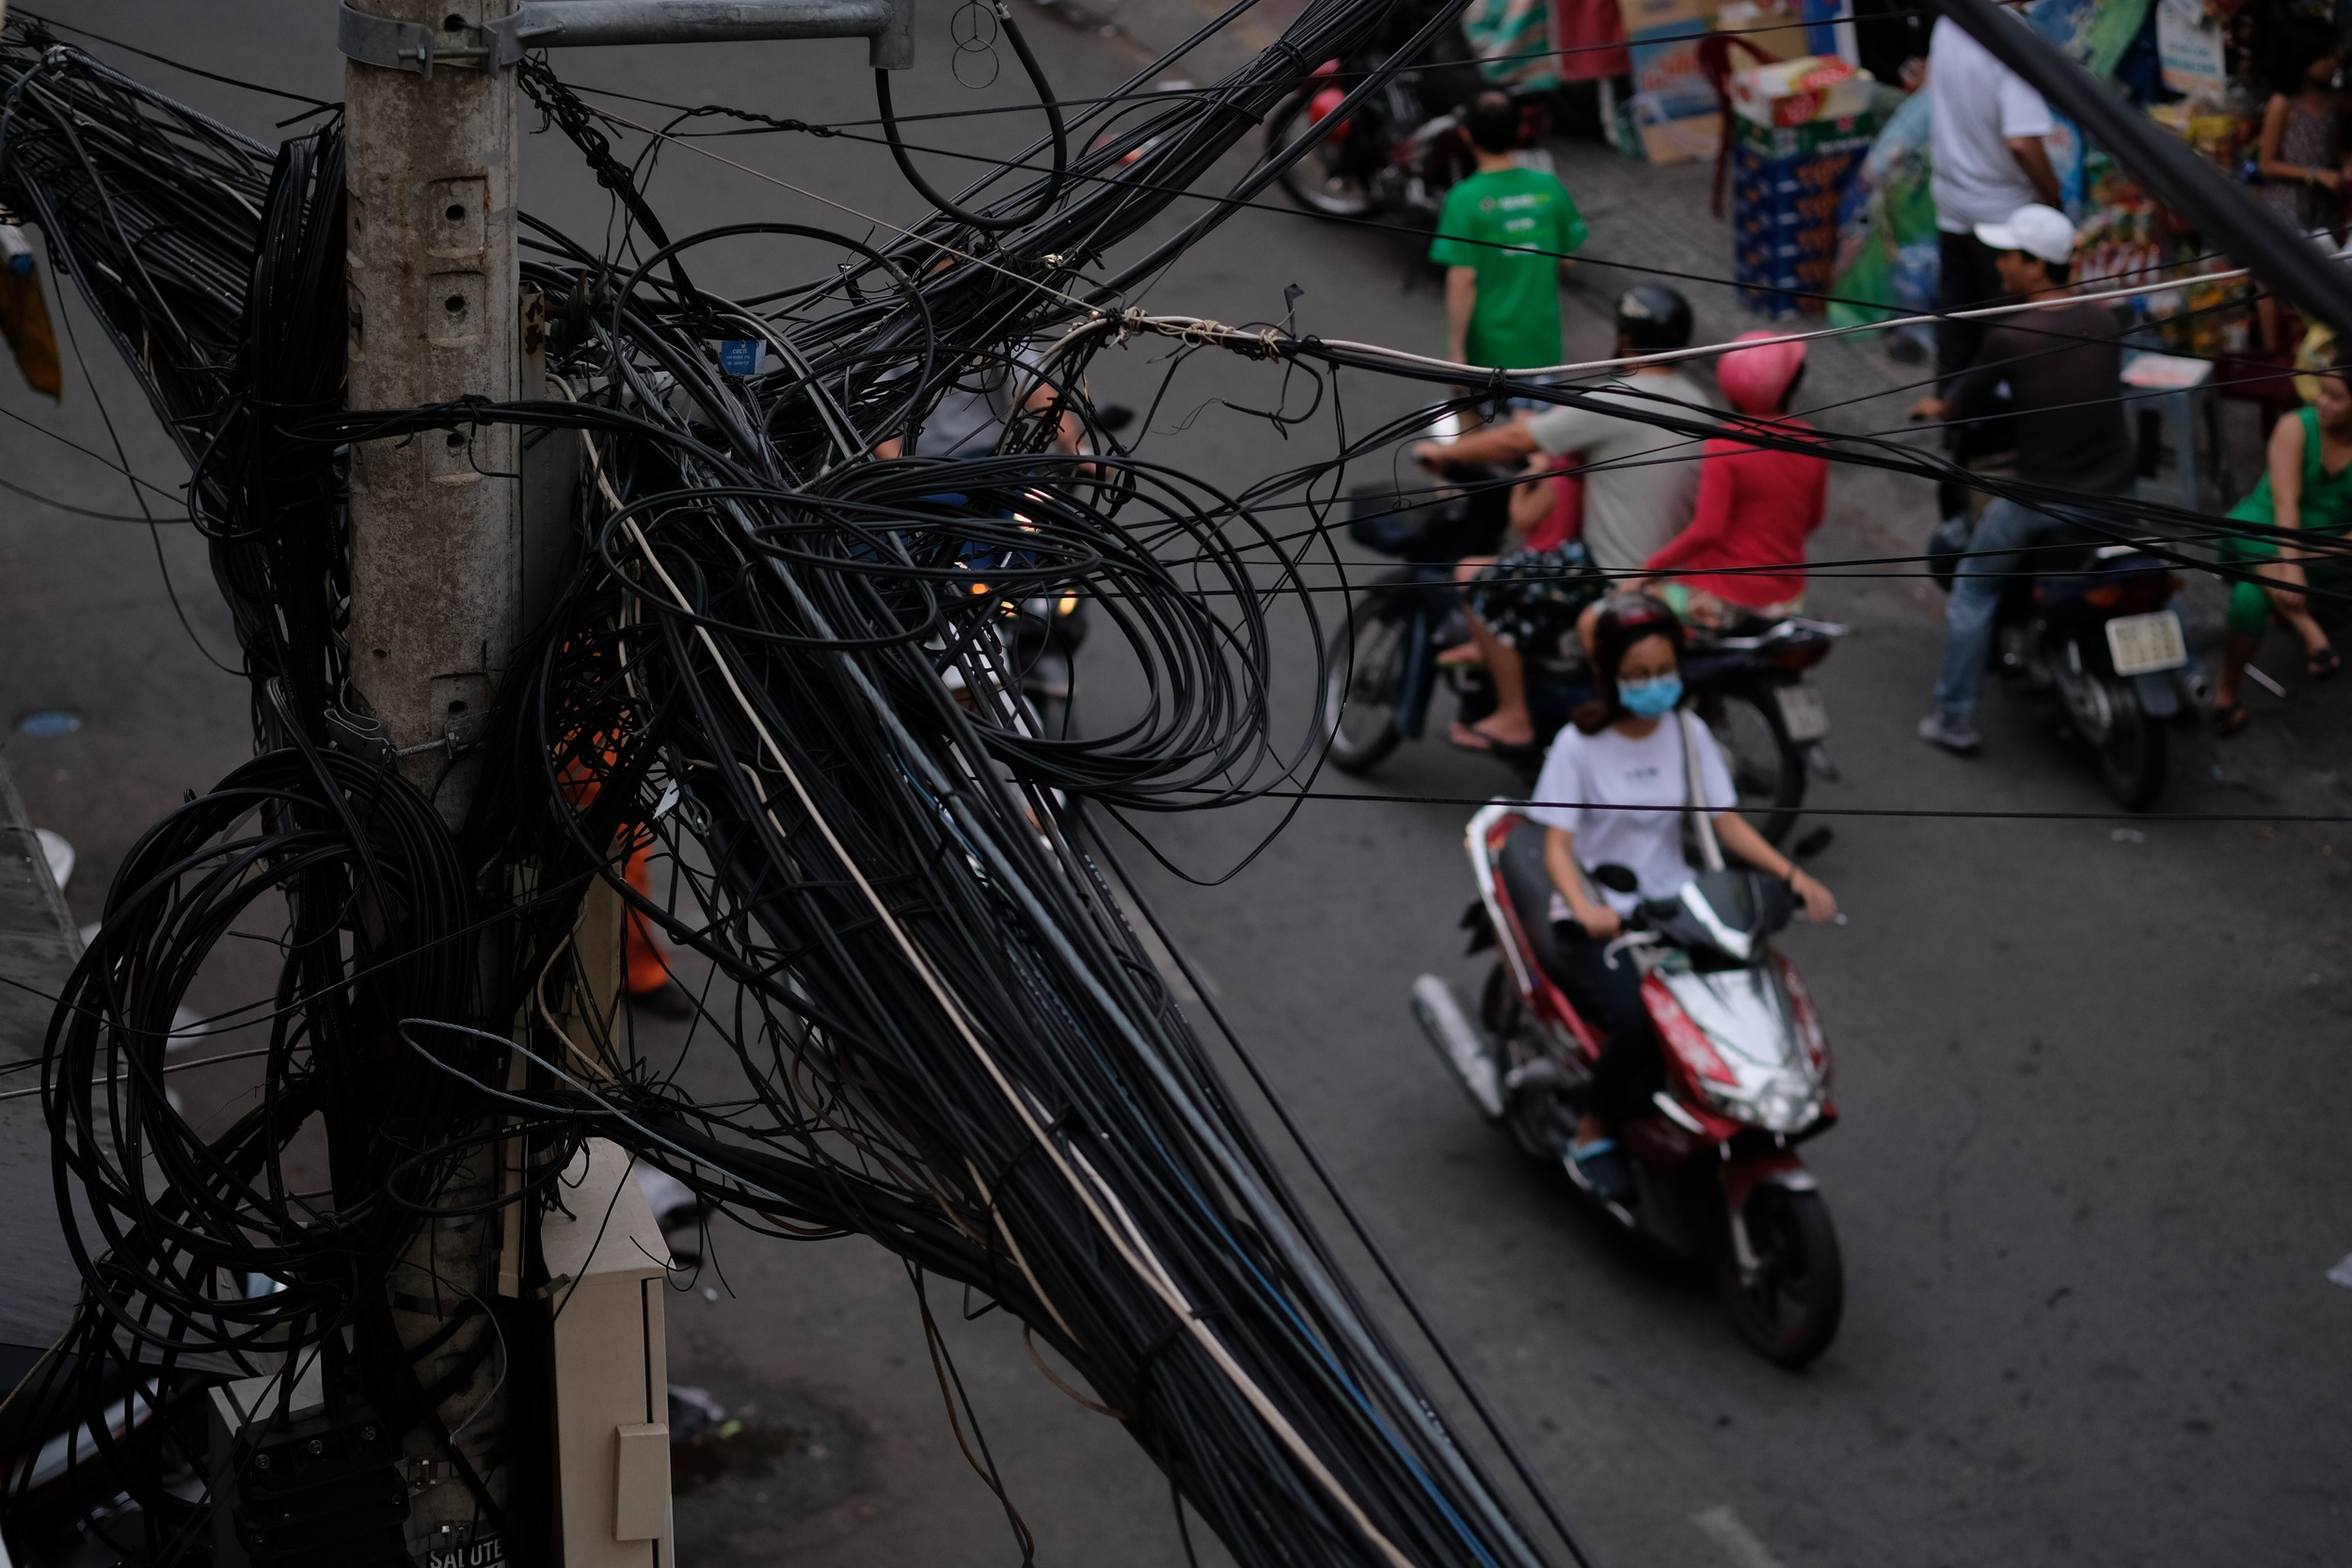 Typical HCMC wiring.